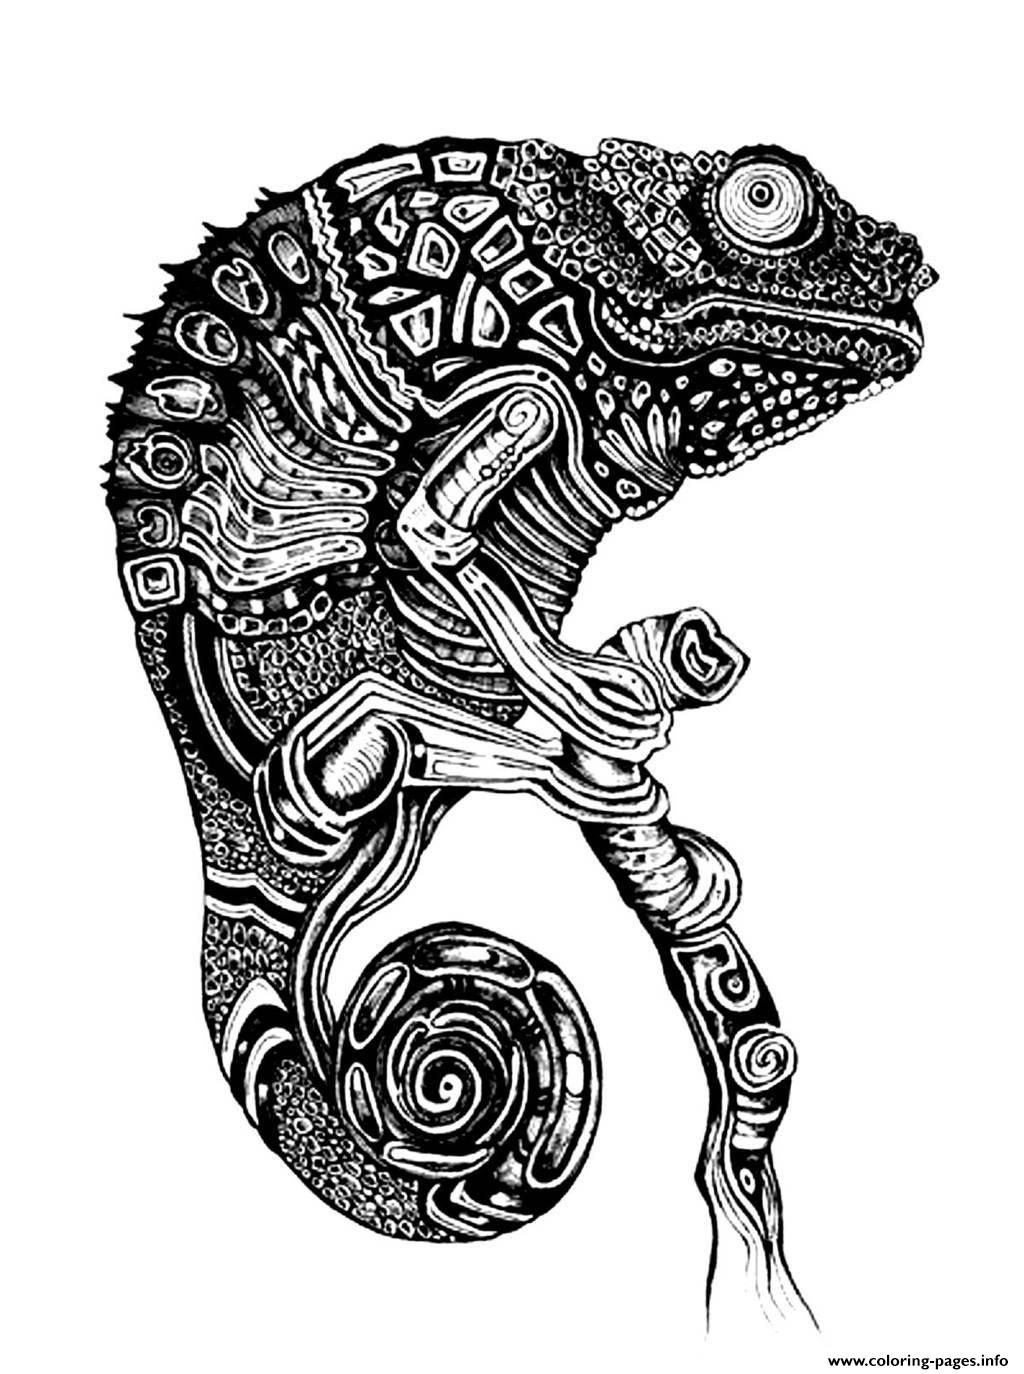 Adult Difficult Cameleon coloring pages